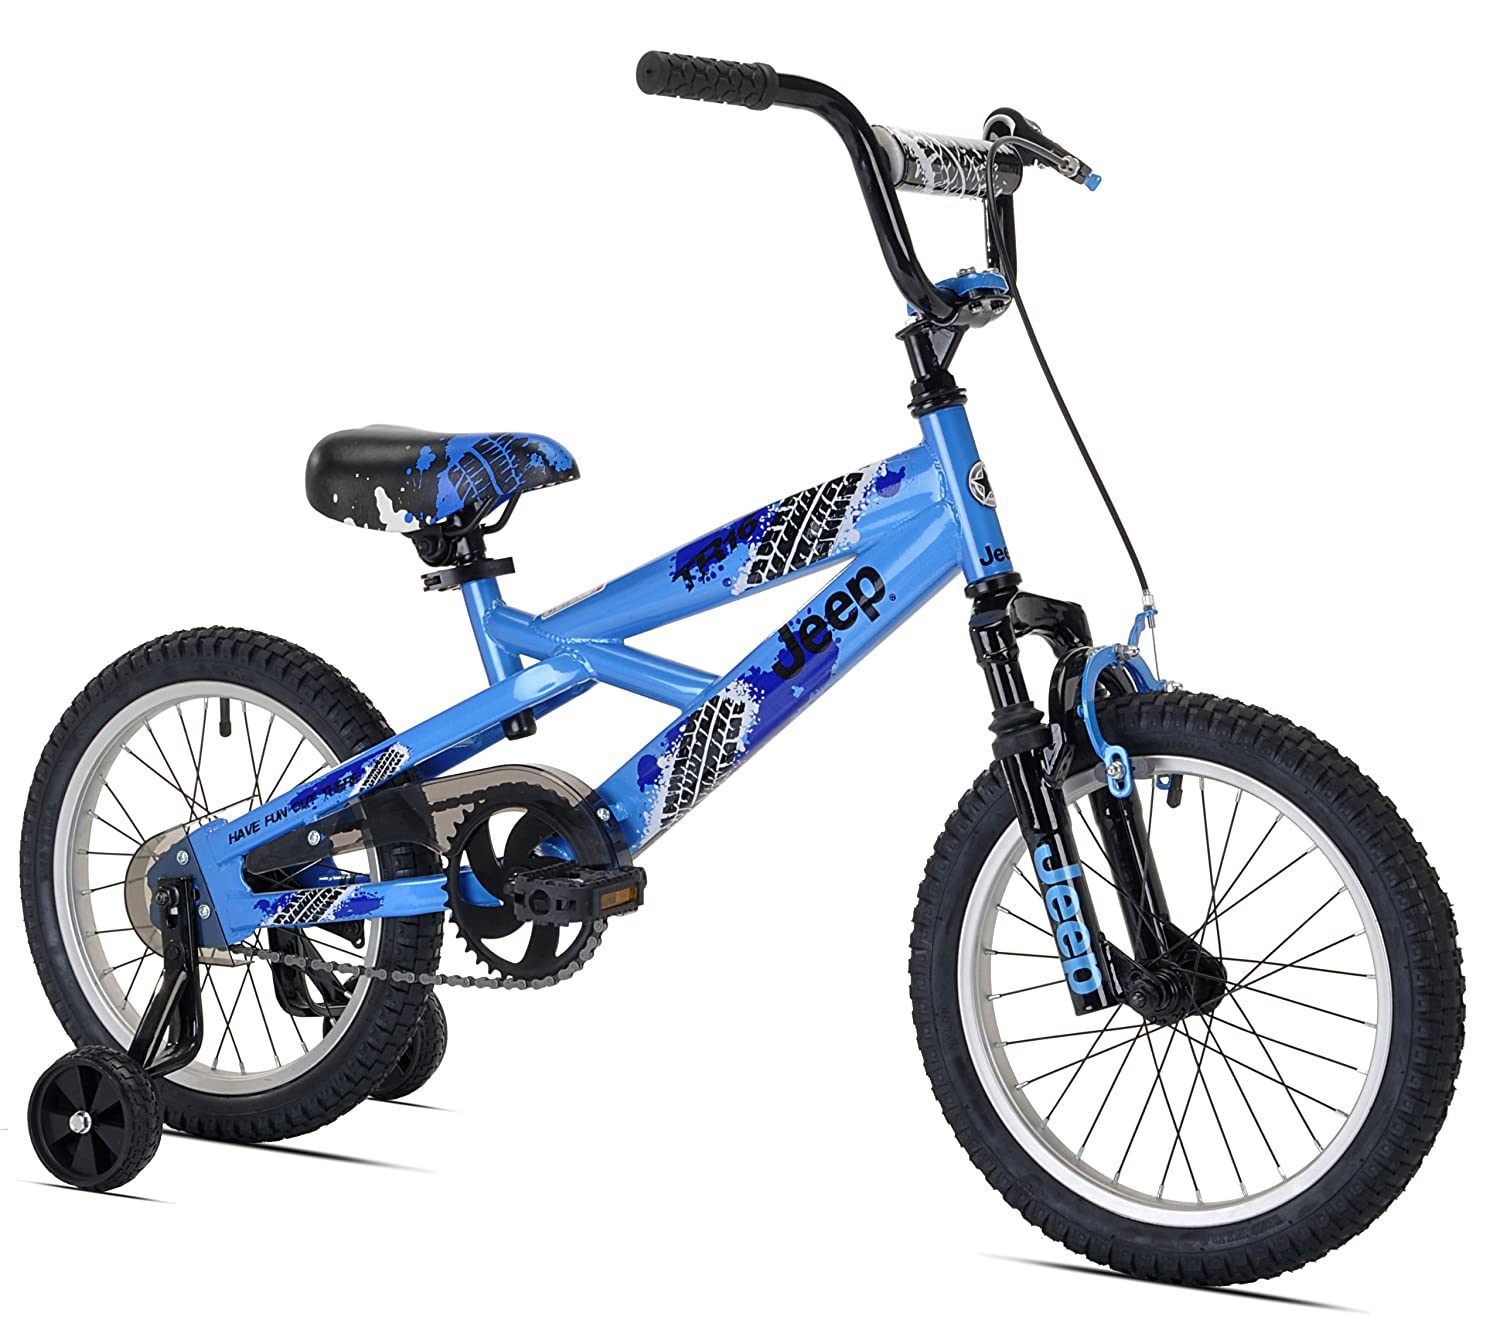 Boys 16 Inch Bmx Bikes Jeep Boy s Bike Inch